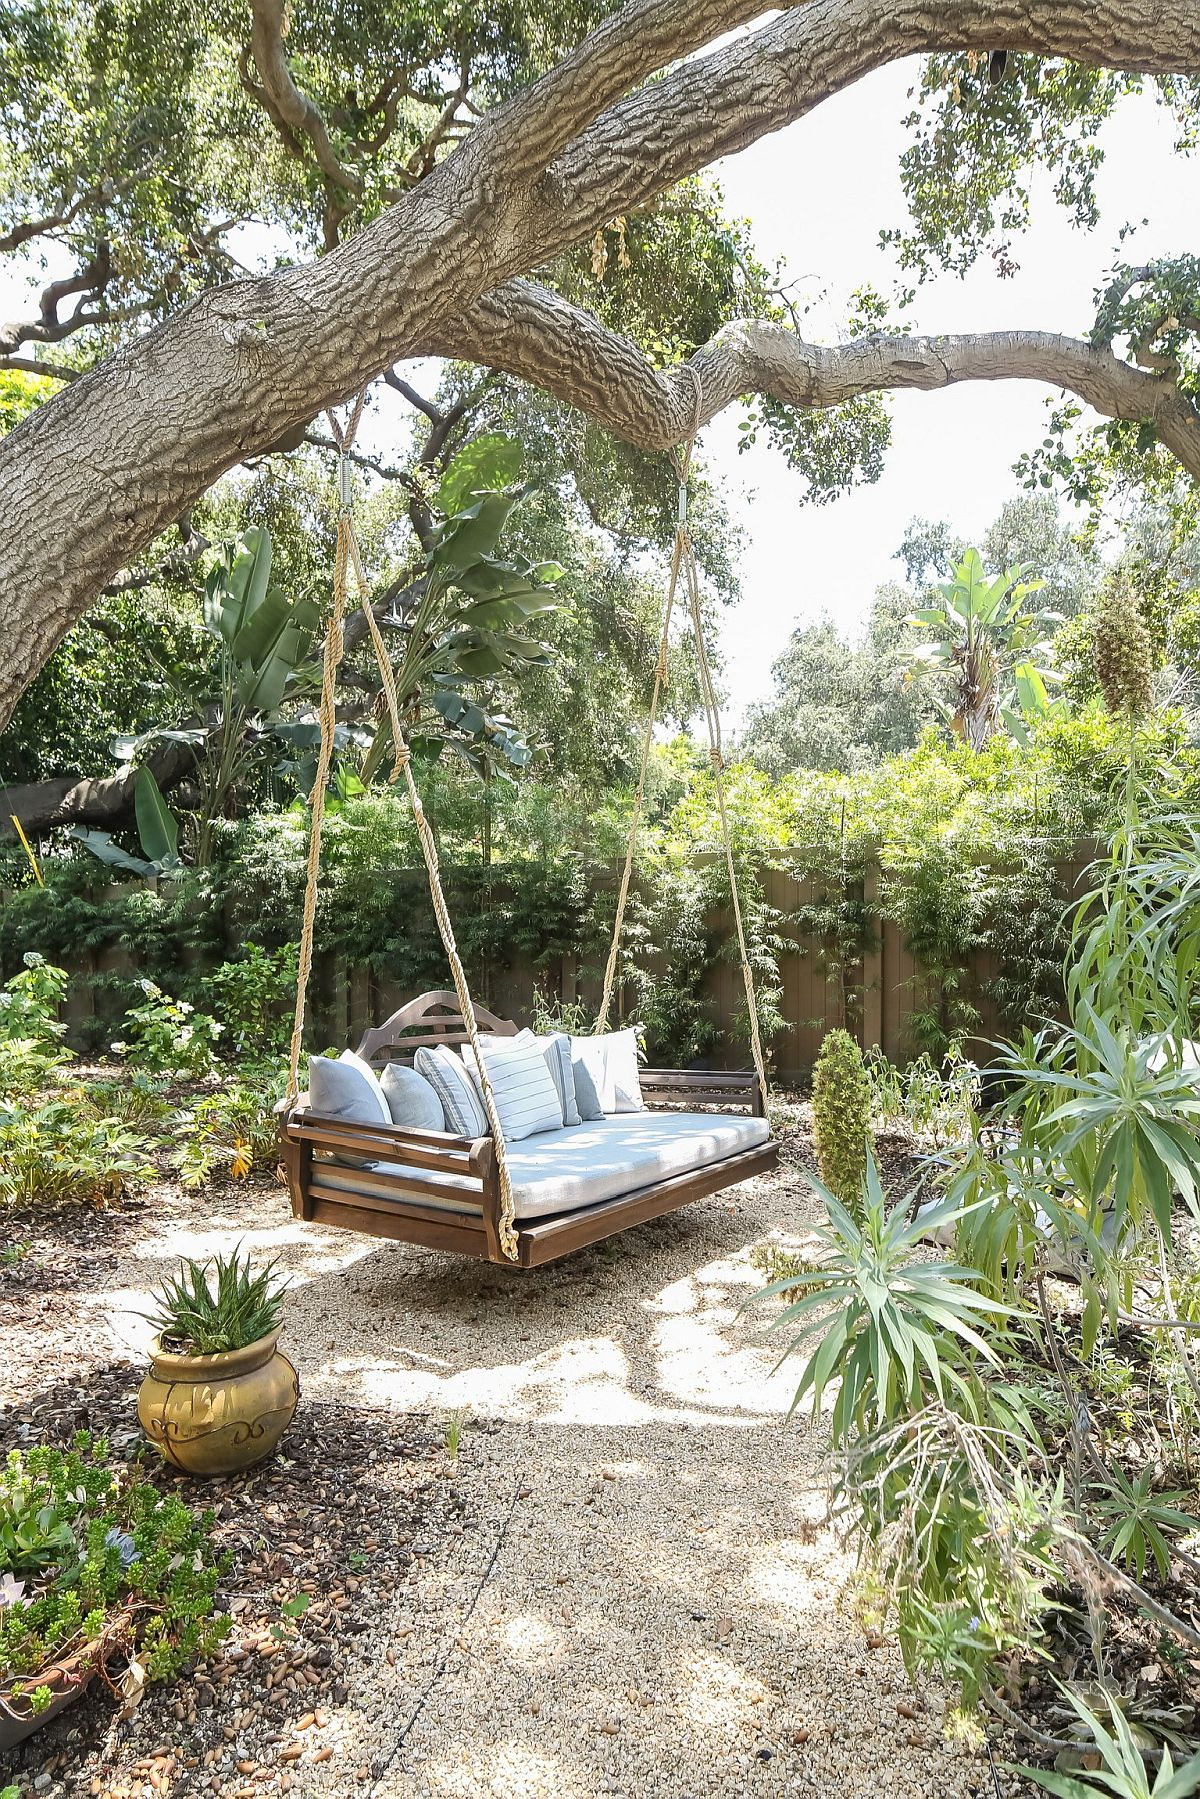 Swing bench in the garden is a great spot to rest in the garden